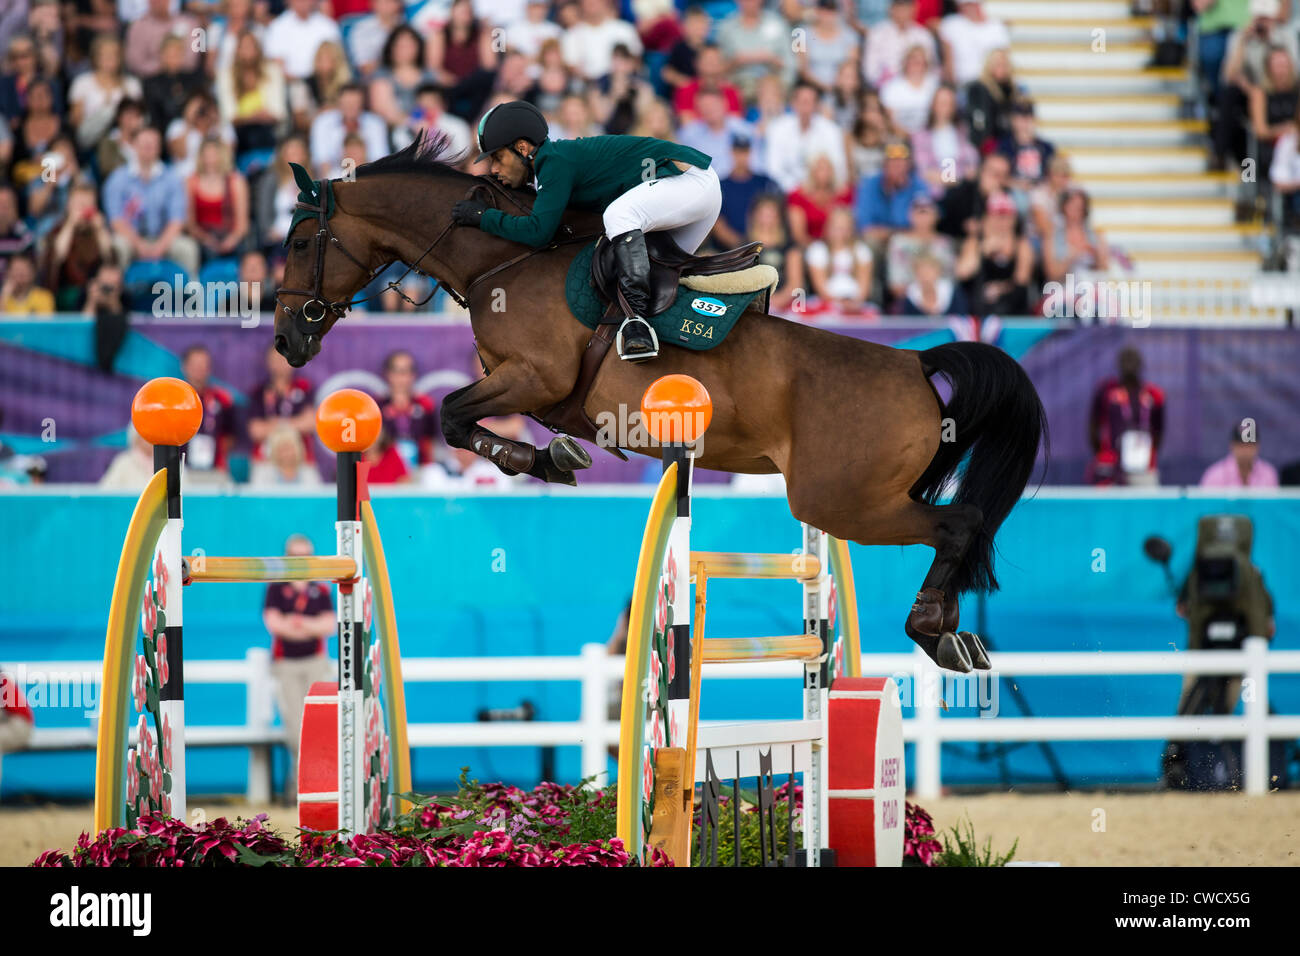 Kamal Bahamdan (KSA) riding NOBLESSE DES TESS in the Individual Jumping Equestrian event at the Olympic Summer Games - Stock Image